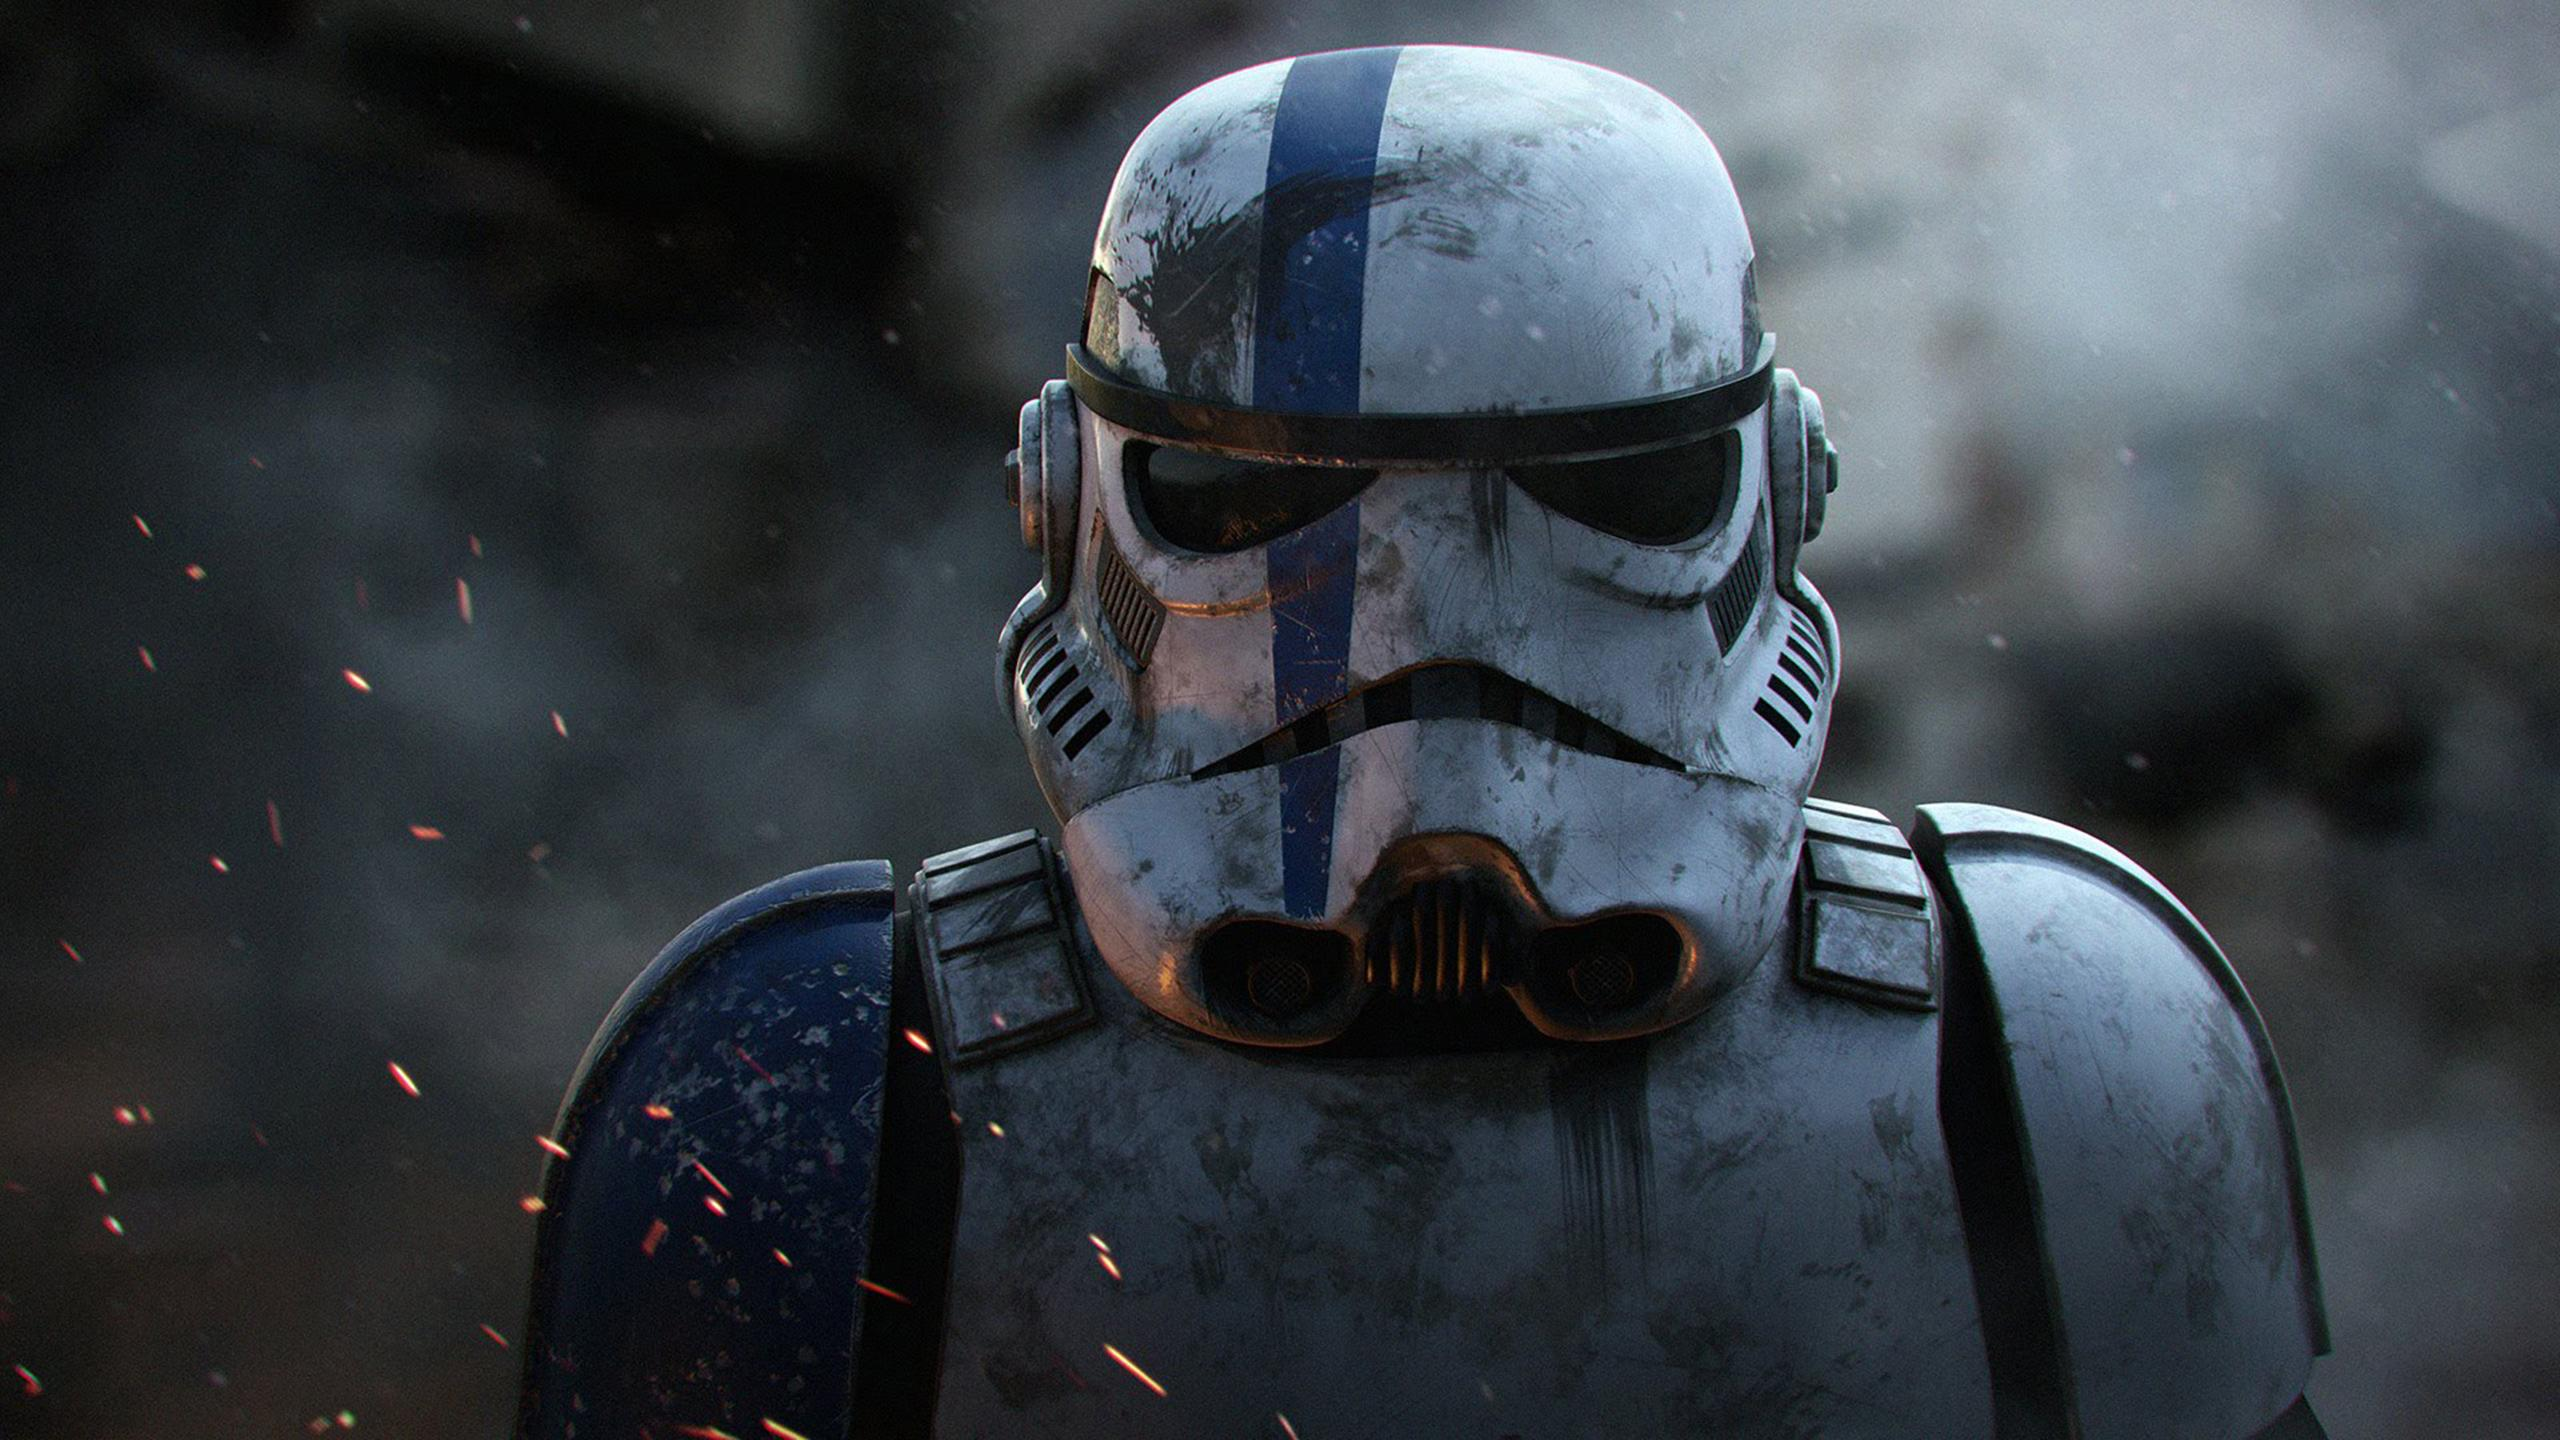 Download Stormtrooper Wallpaper Android Hd Backgrounds